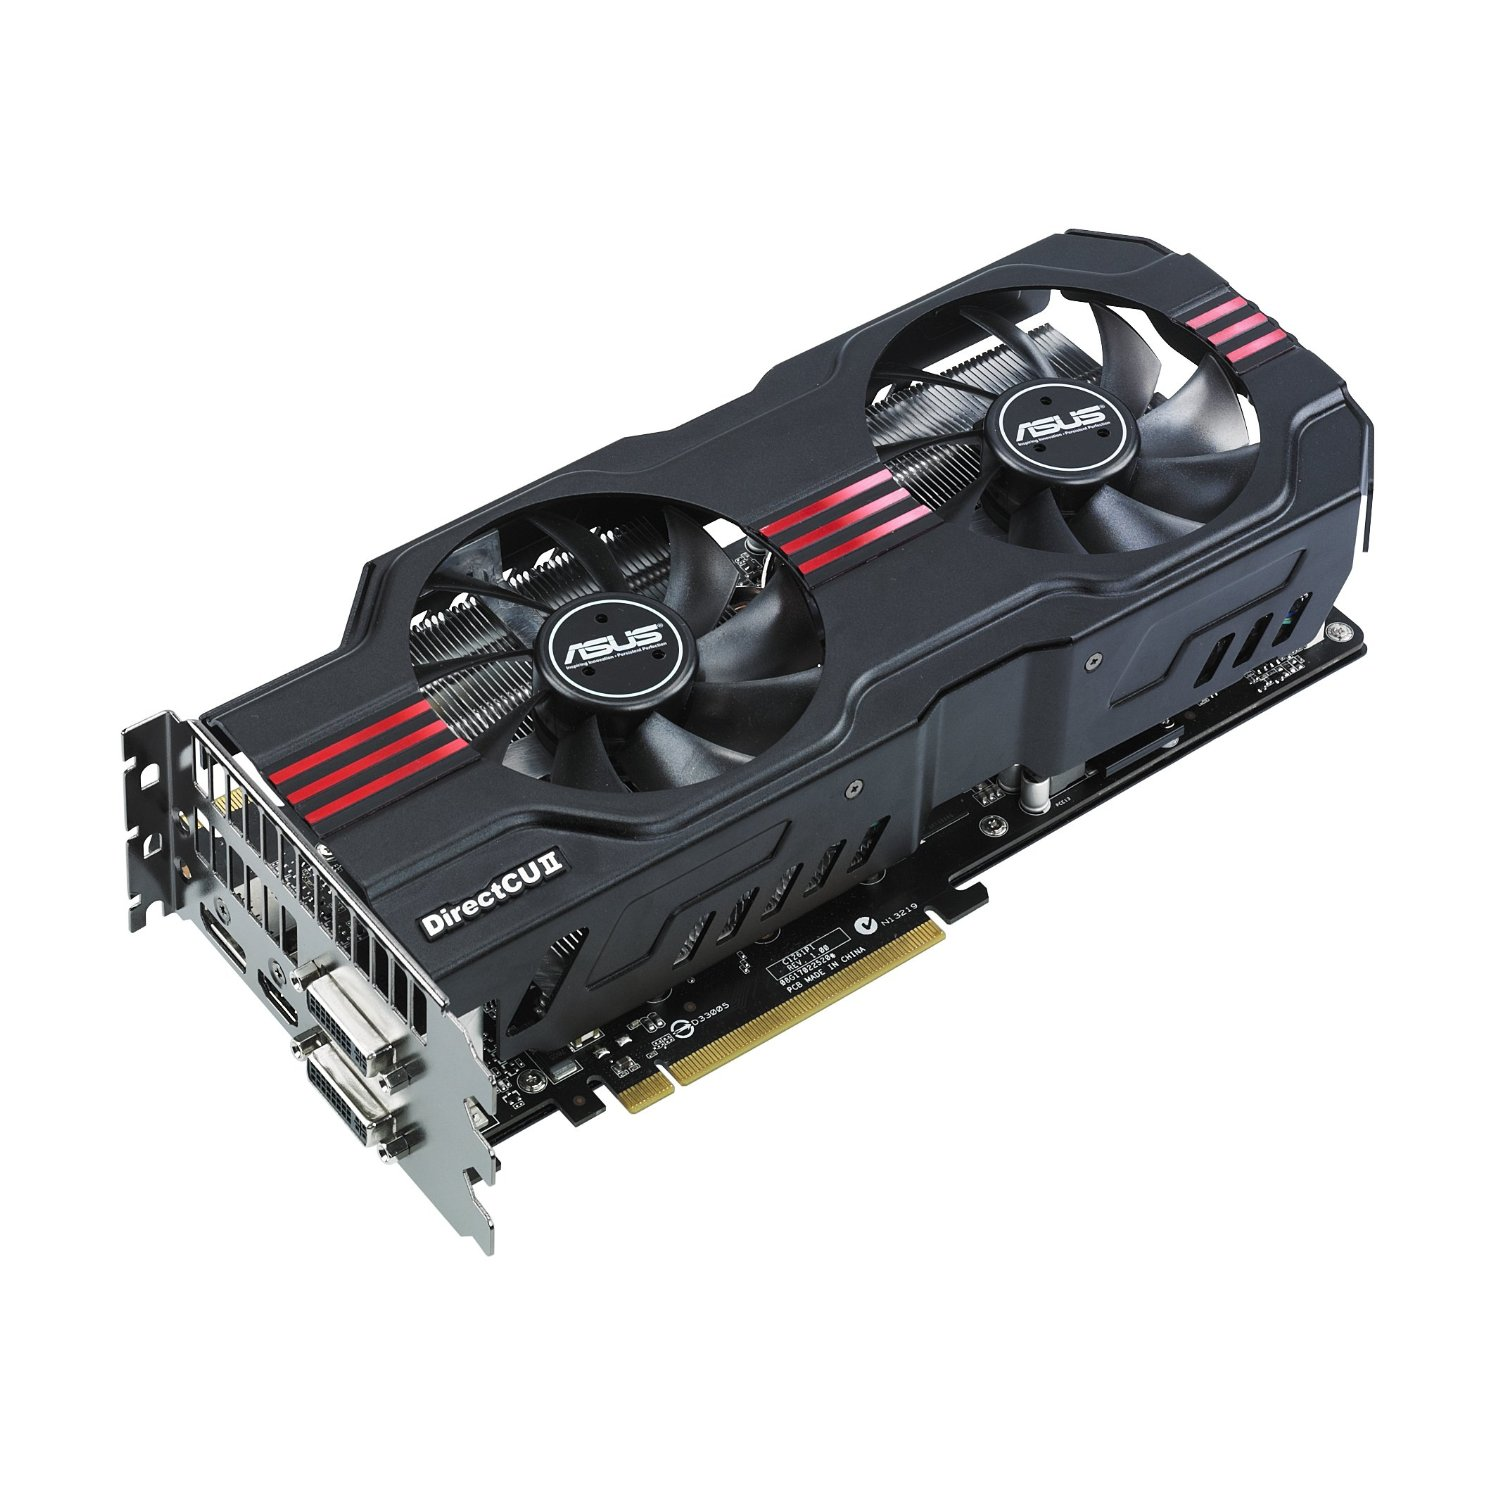 ASUS VC NVIDIA ENGTX580 DCII/2DIS/1536MD5 IIDVI / HDMI / DISPPORT DDR5 1536MB